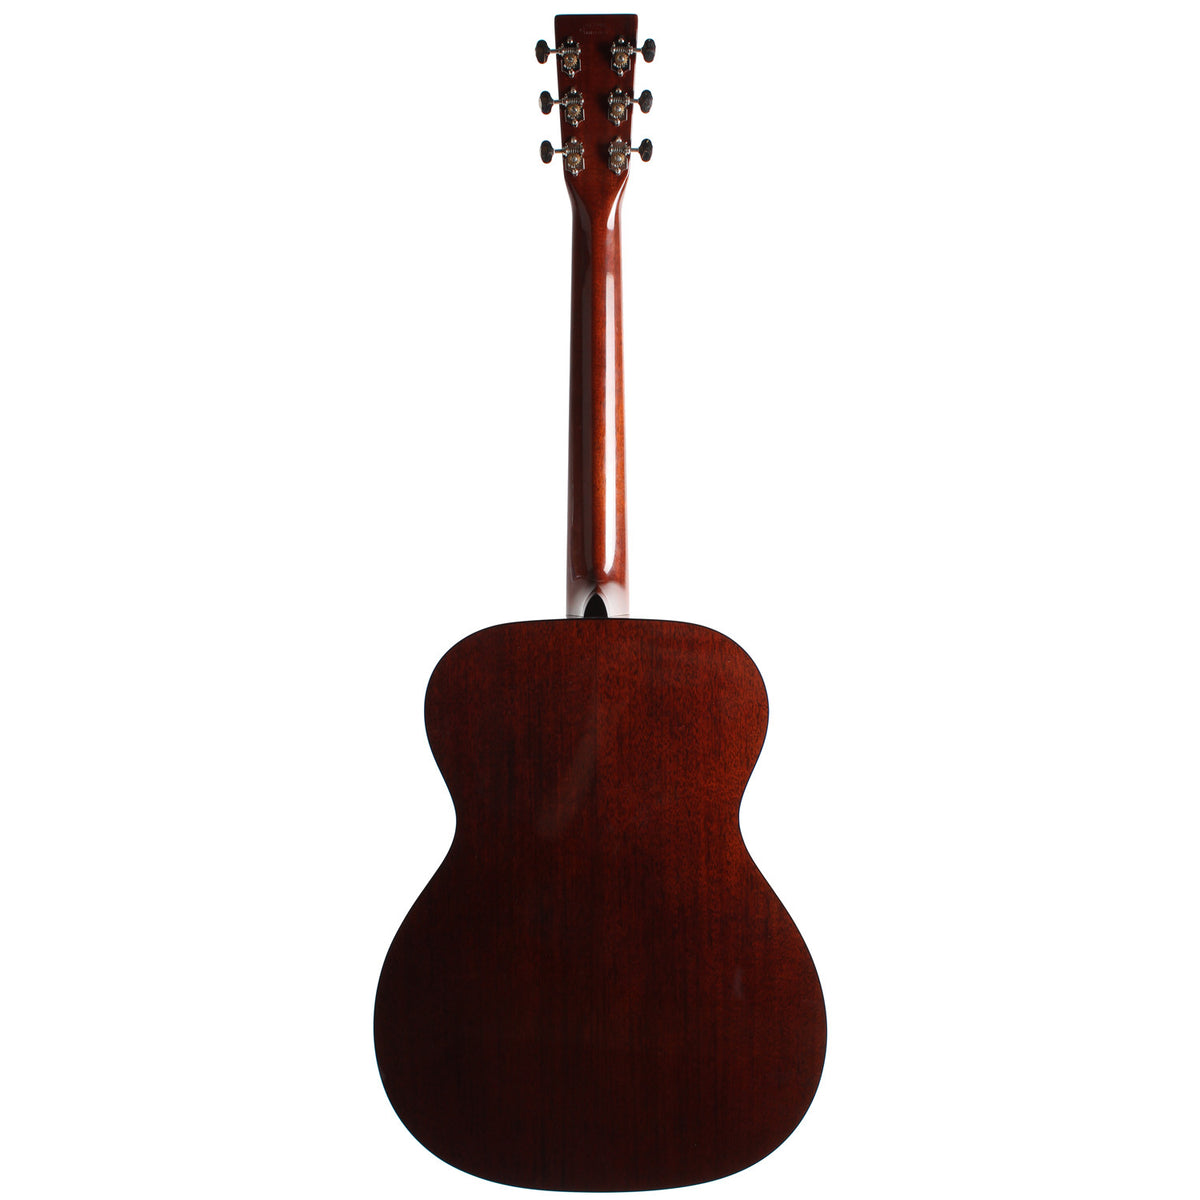 2013 Martin OM-18 Authentic 1933 - Garrett Park Guitars  - 6